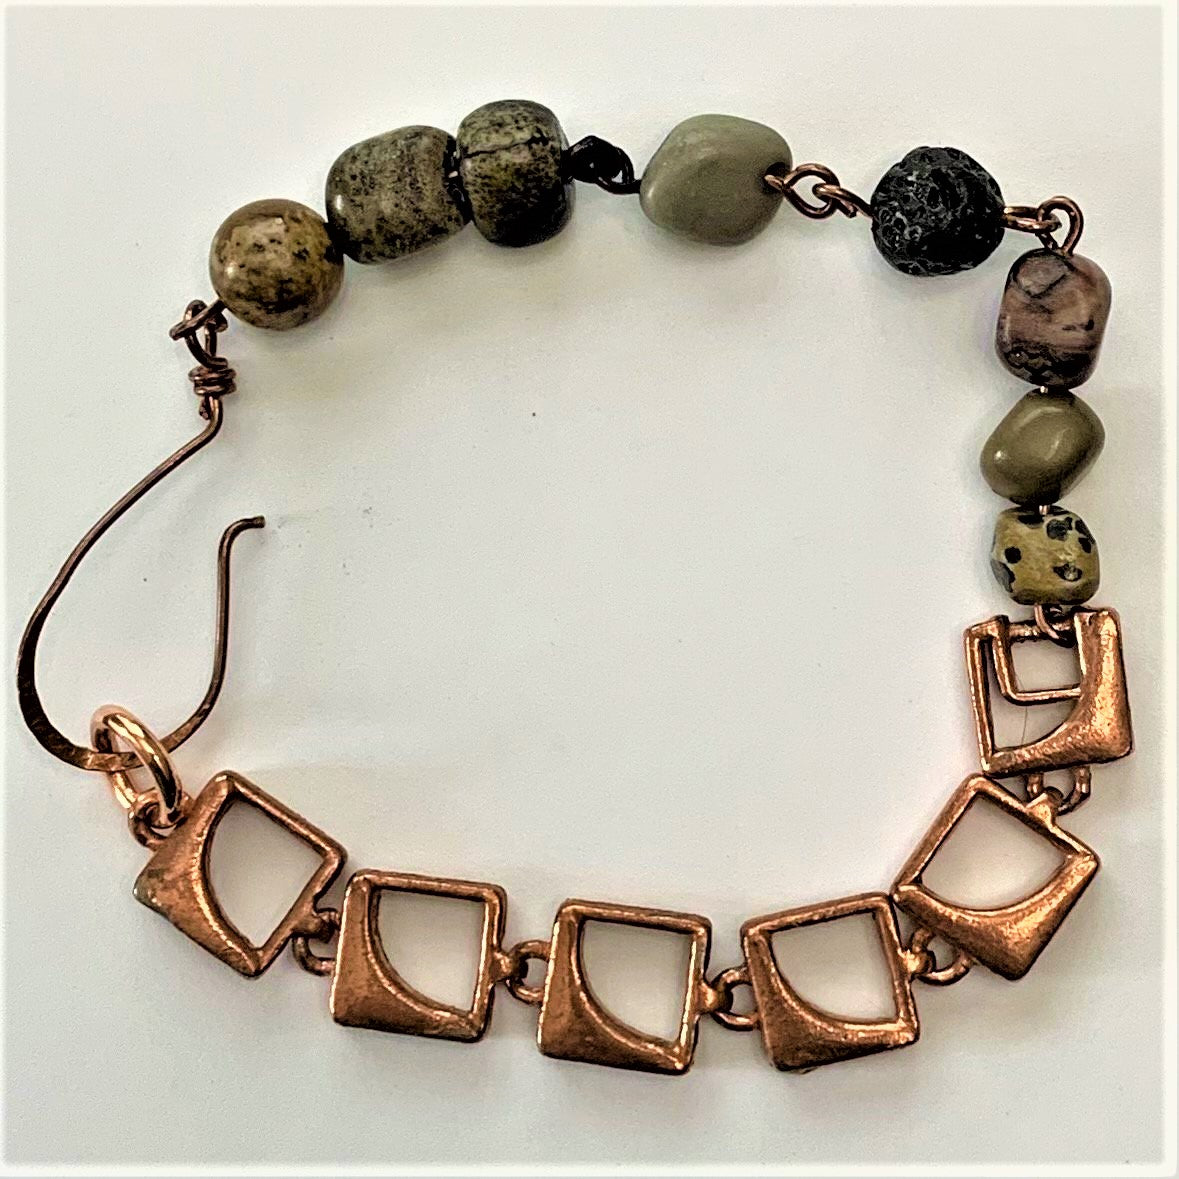 Vintage Chain with Multi-Gemstone Copper Bracelet